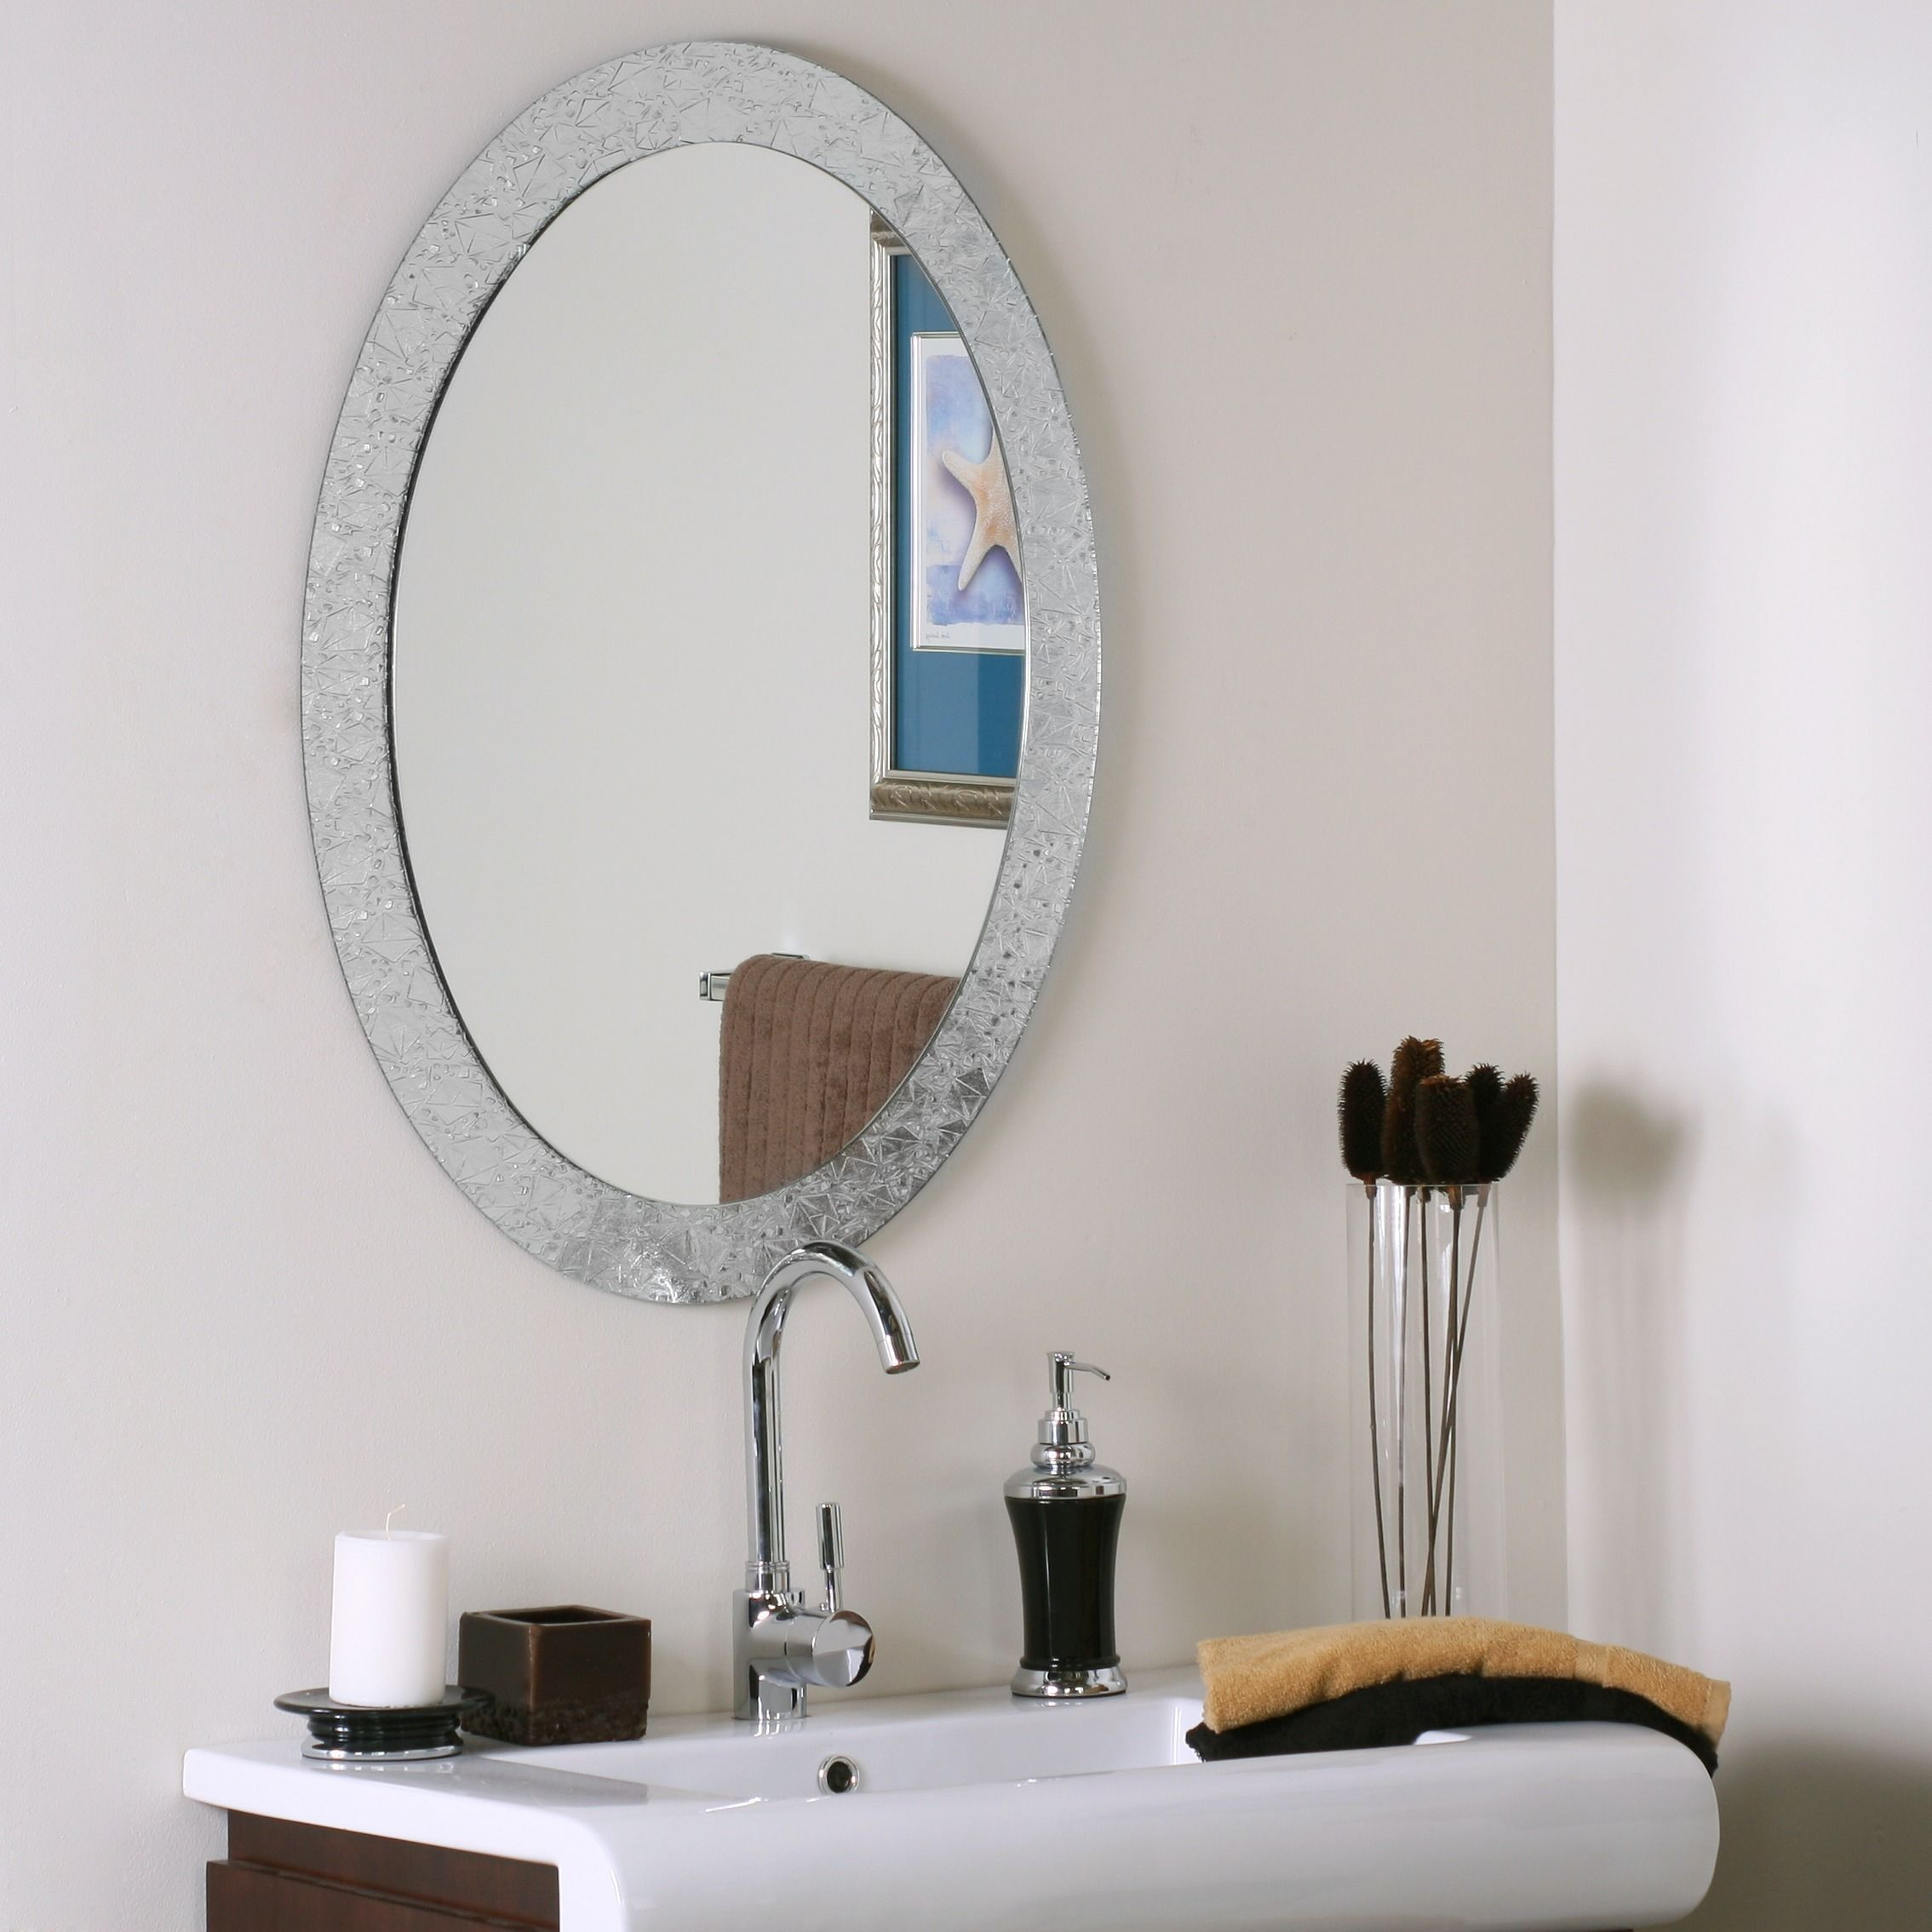 Frameless Designer Wall Mirror, Silver, Decor Wonderland Inside Logan Frameless Wall Mirrors (View 11 of 20)